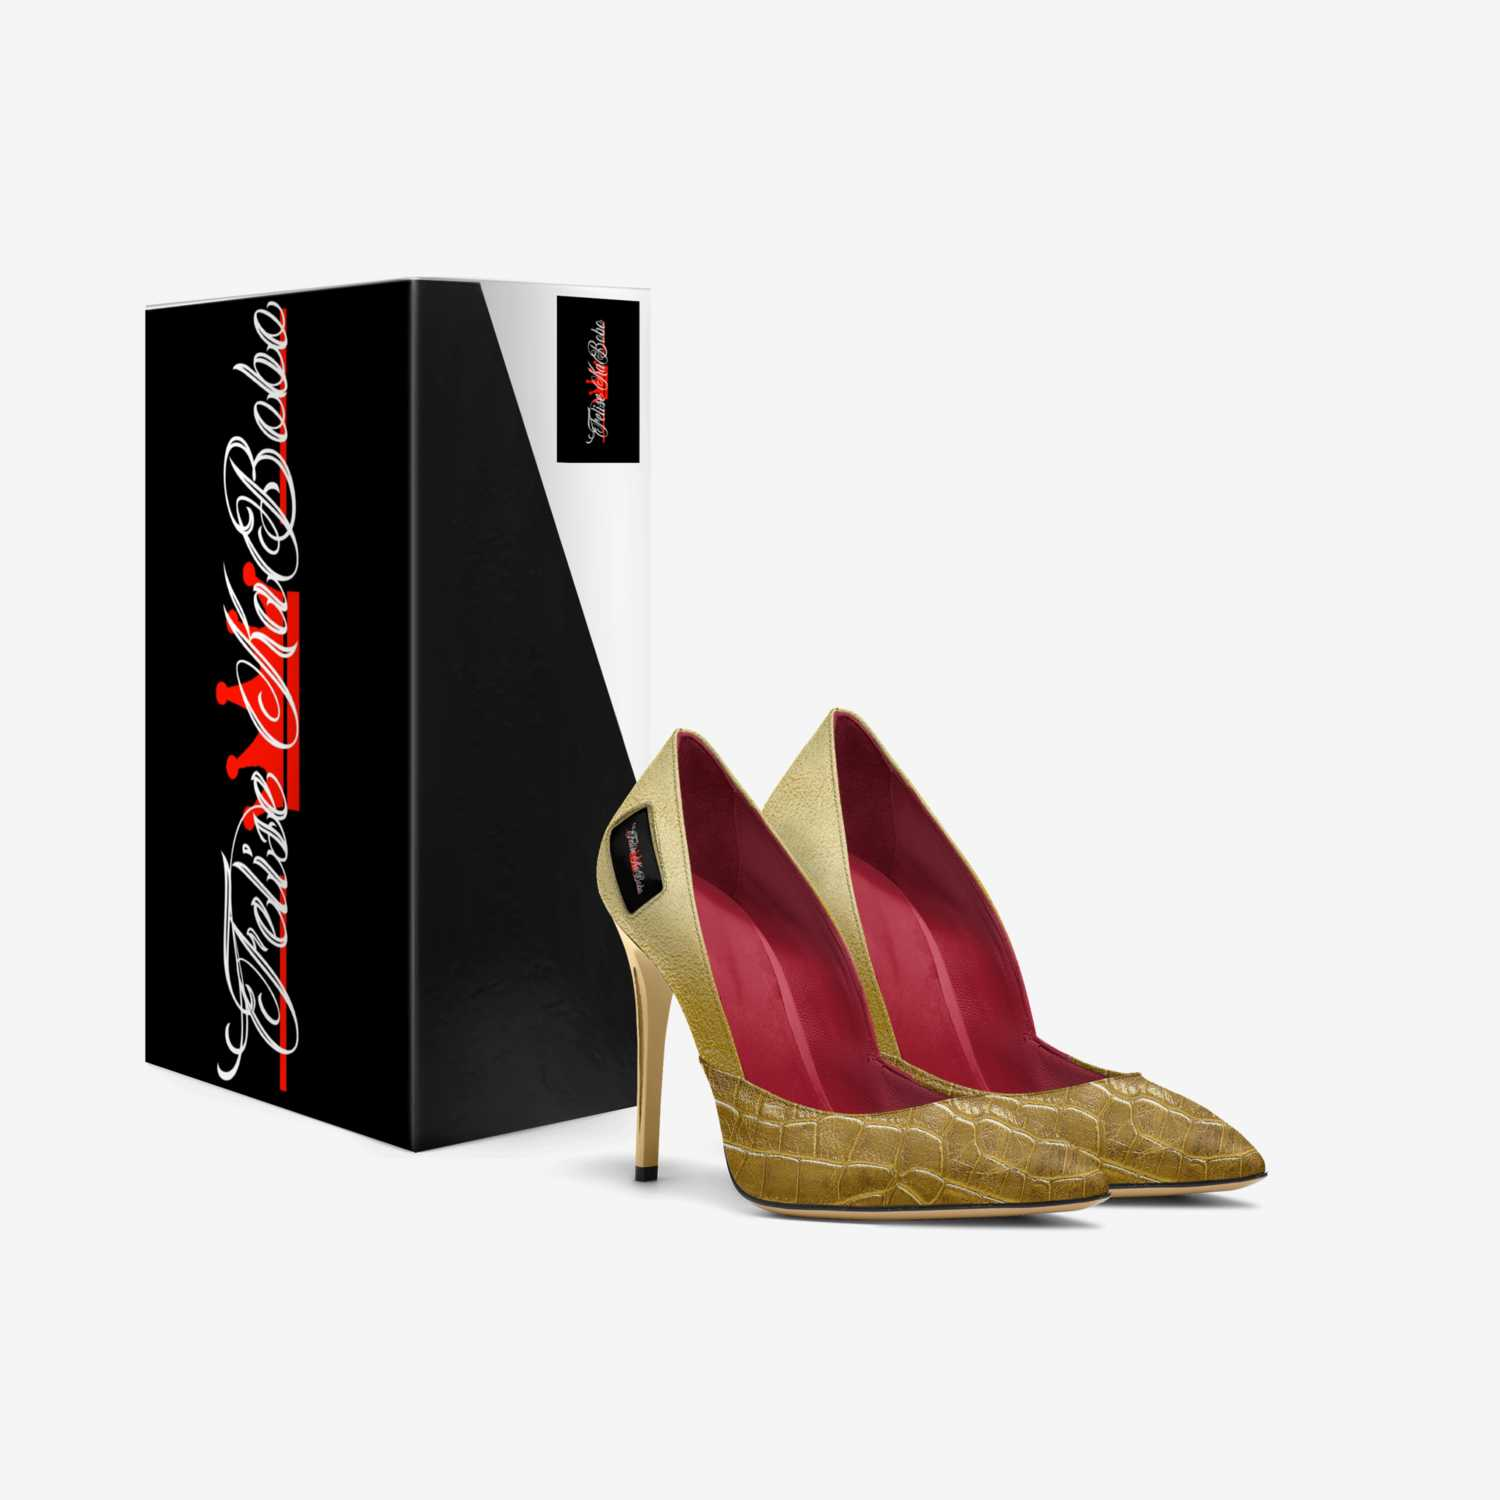 Felise KaBobo custom made in Italy shoes by Shamsud-din King   Box view